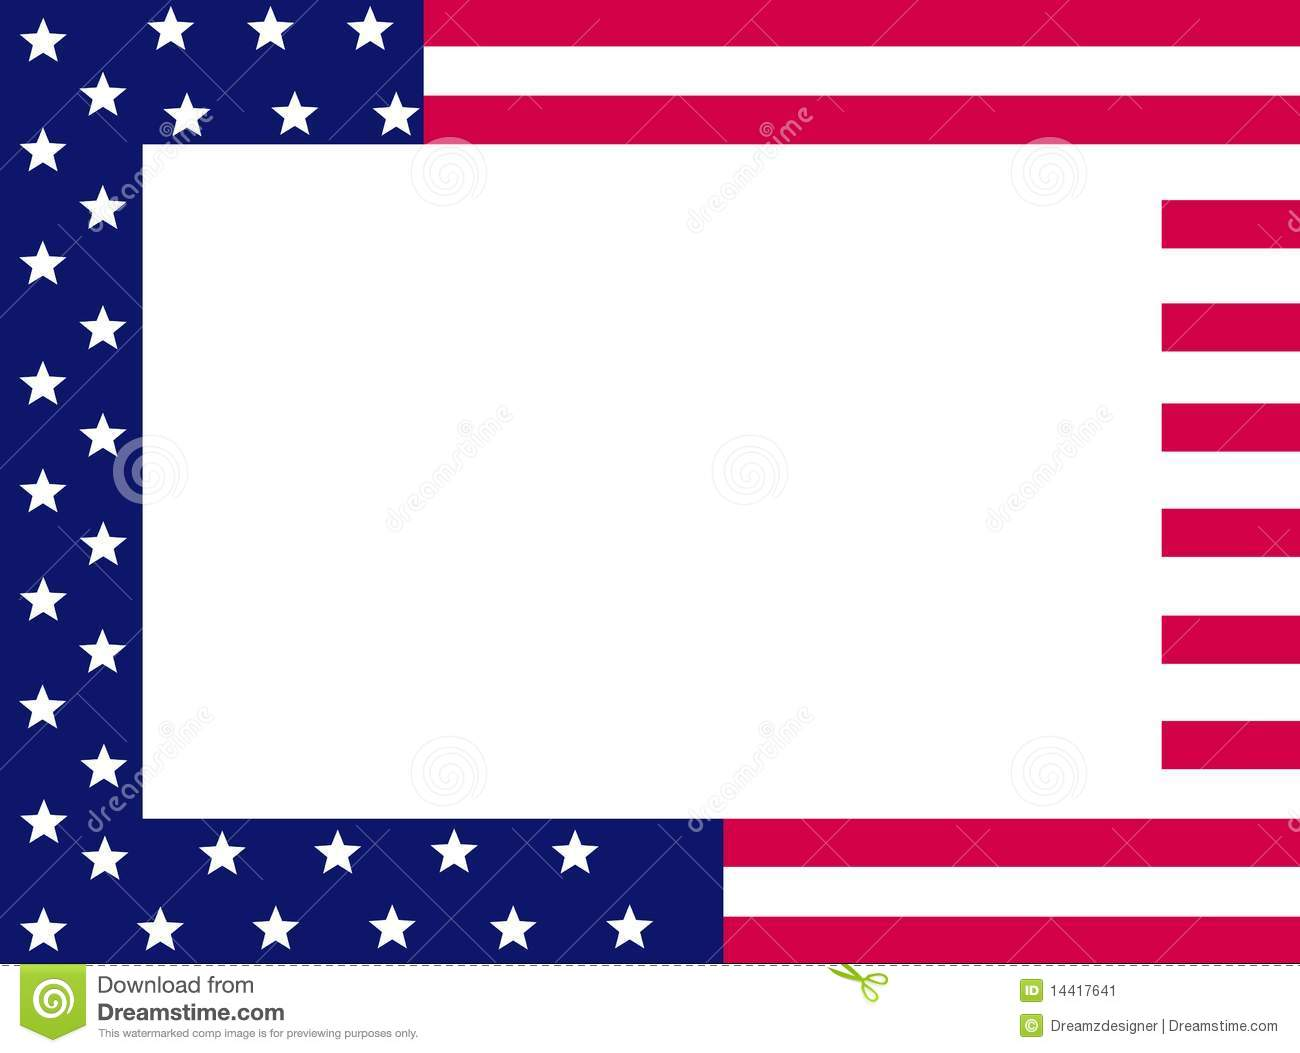 Free Stars And Stripes Clipart.